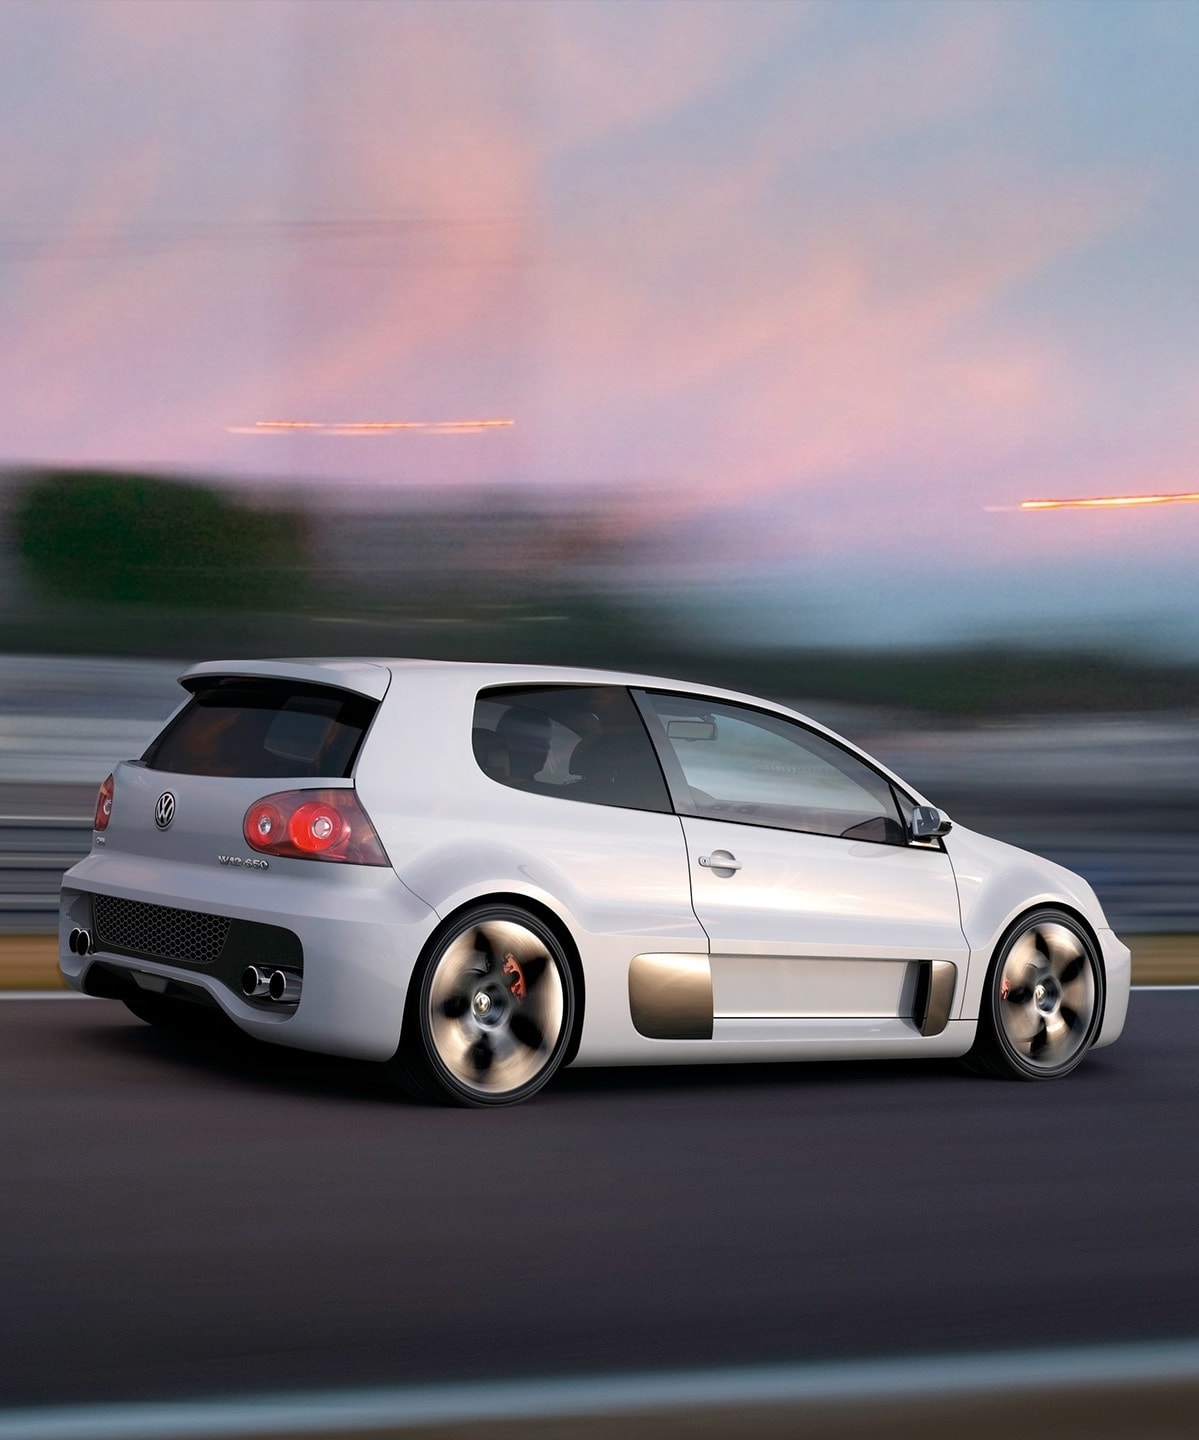 Volkswagen Golf GTI W12-650 Concept For mobile